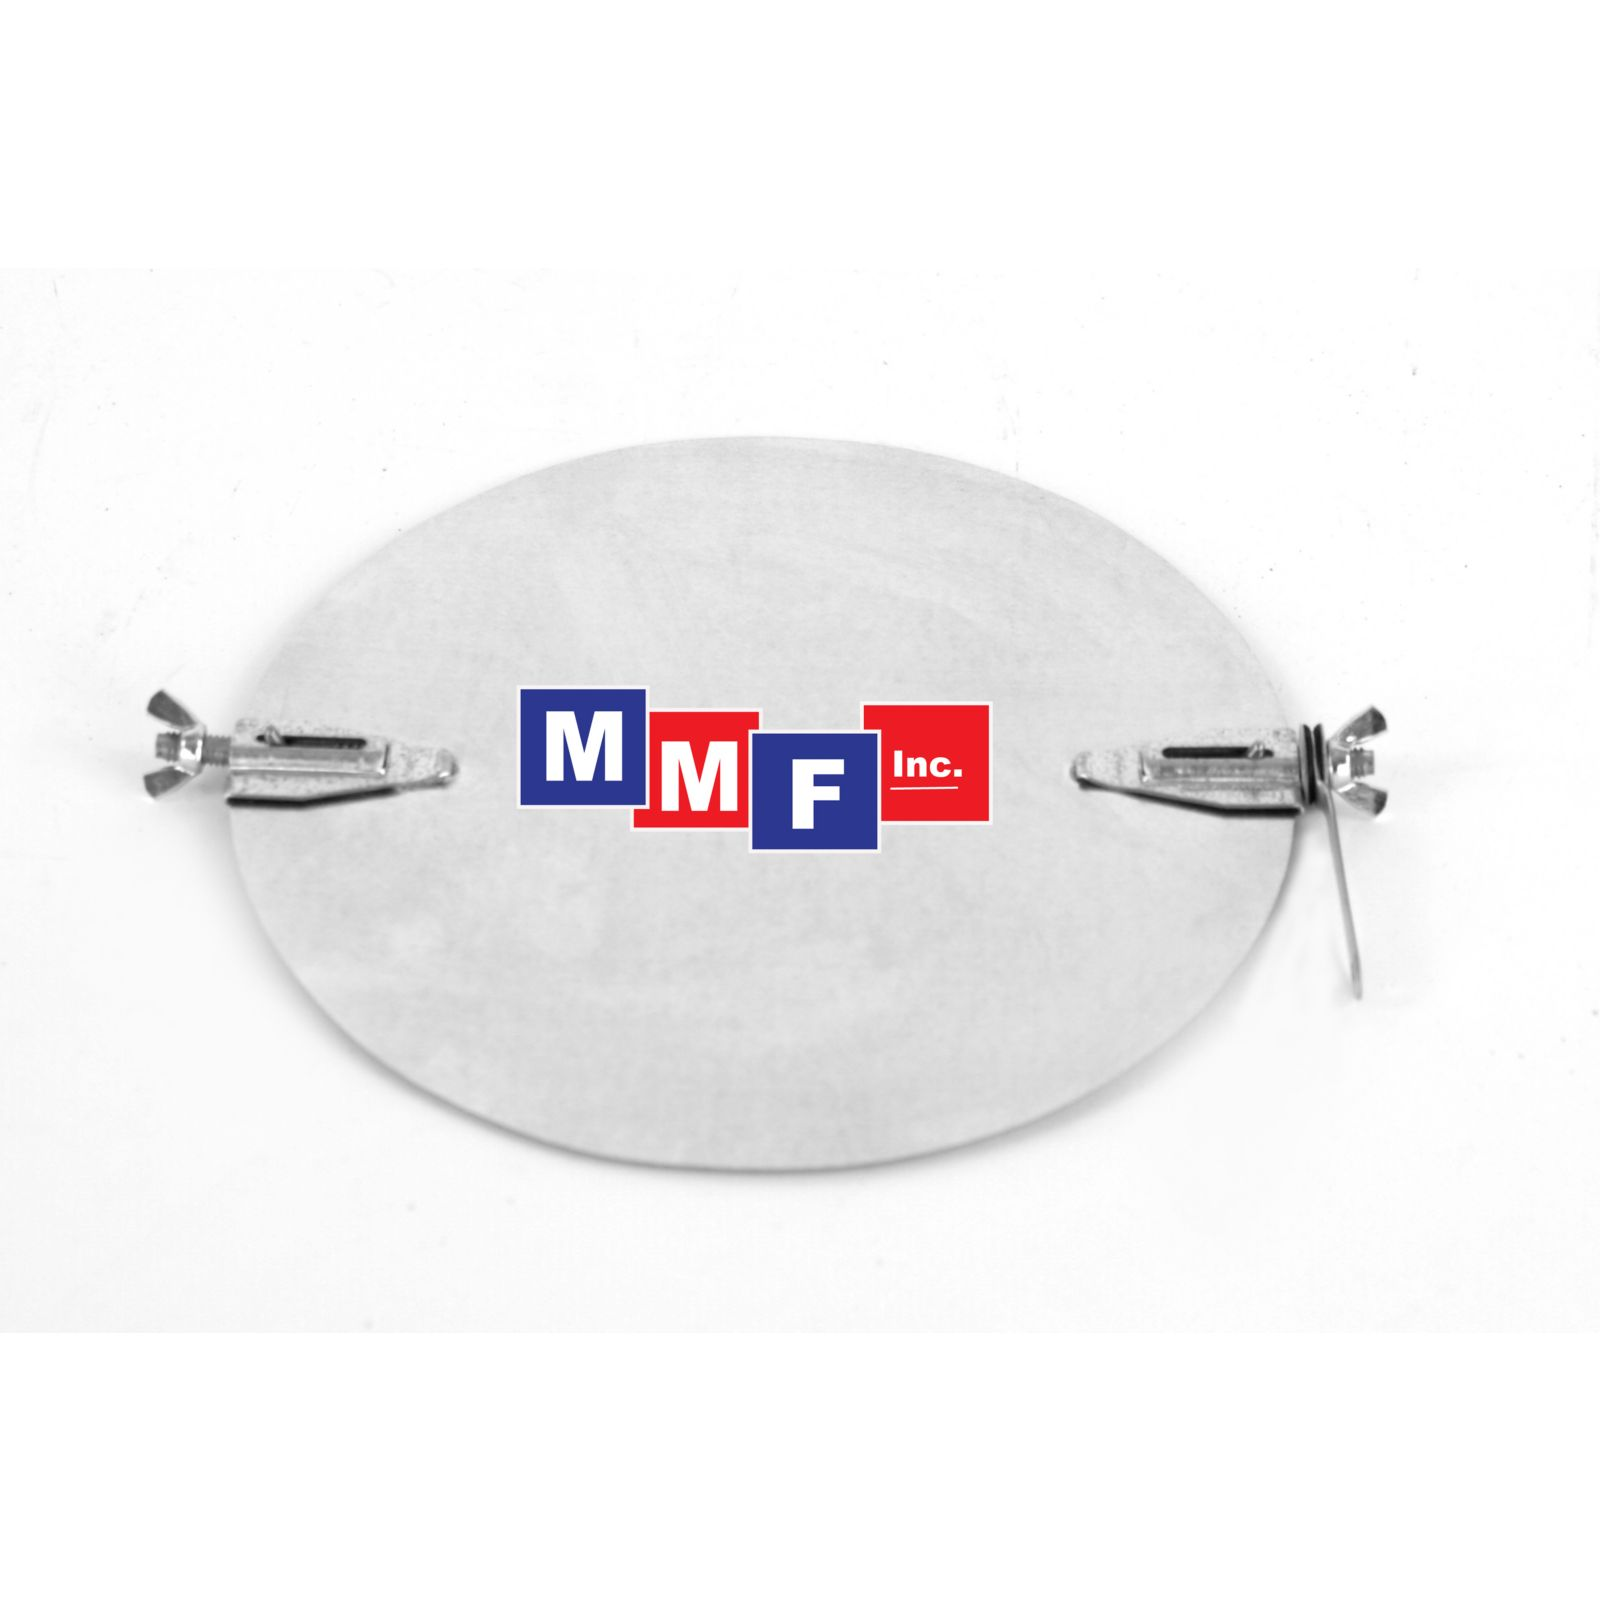 "Modular Metal DMHJ16 - Damper Disc - With Hardware - 24 Gauge 16"" Round With Double Wing Nuts"